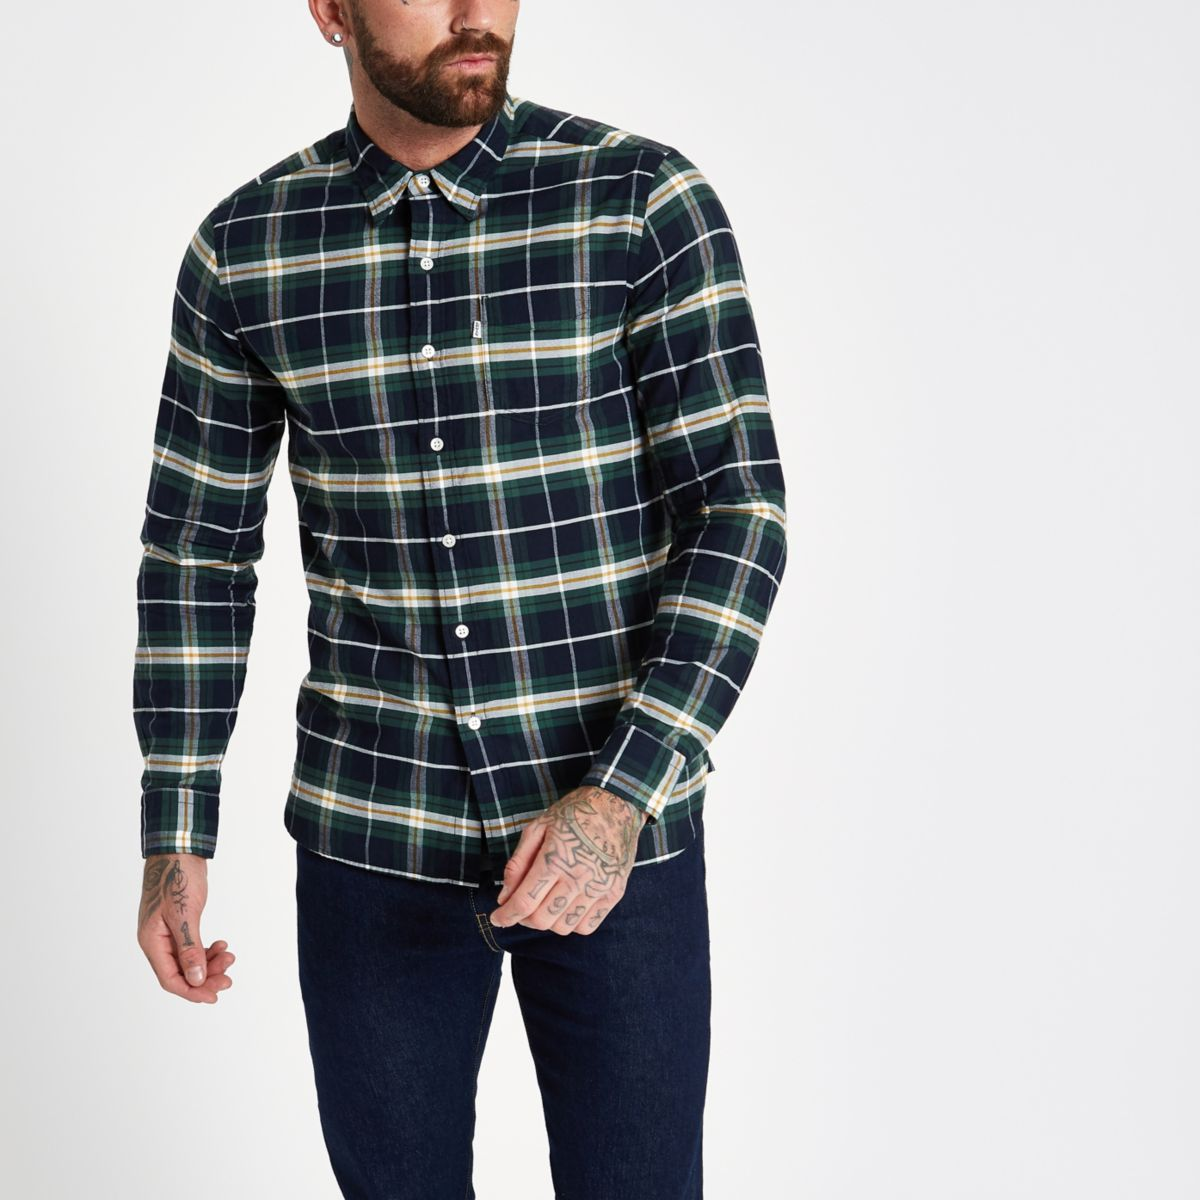 ​Levi's green check shirt